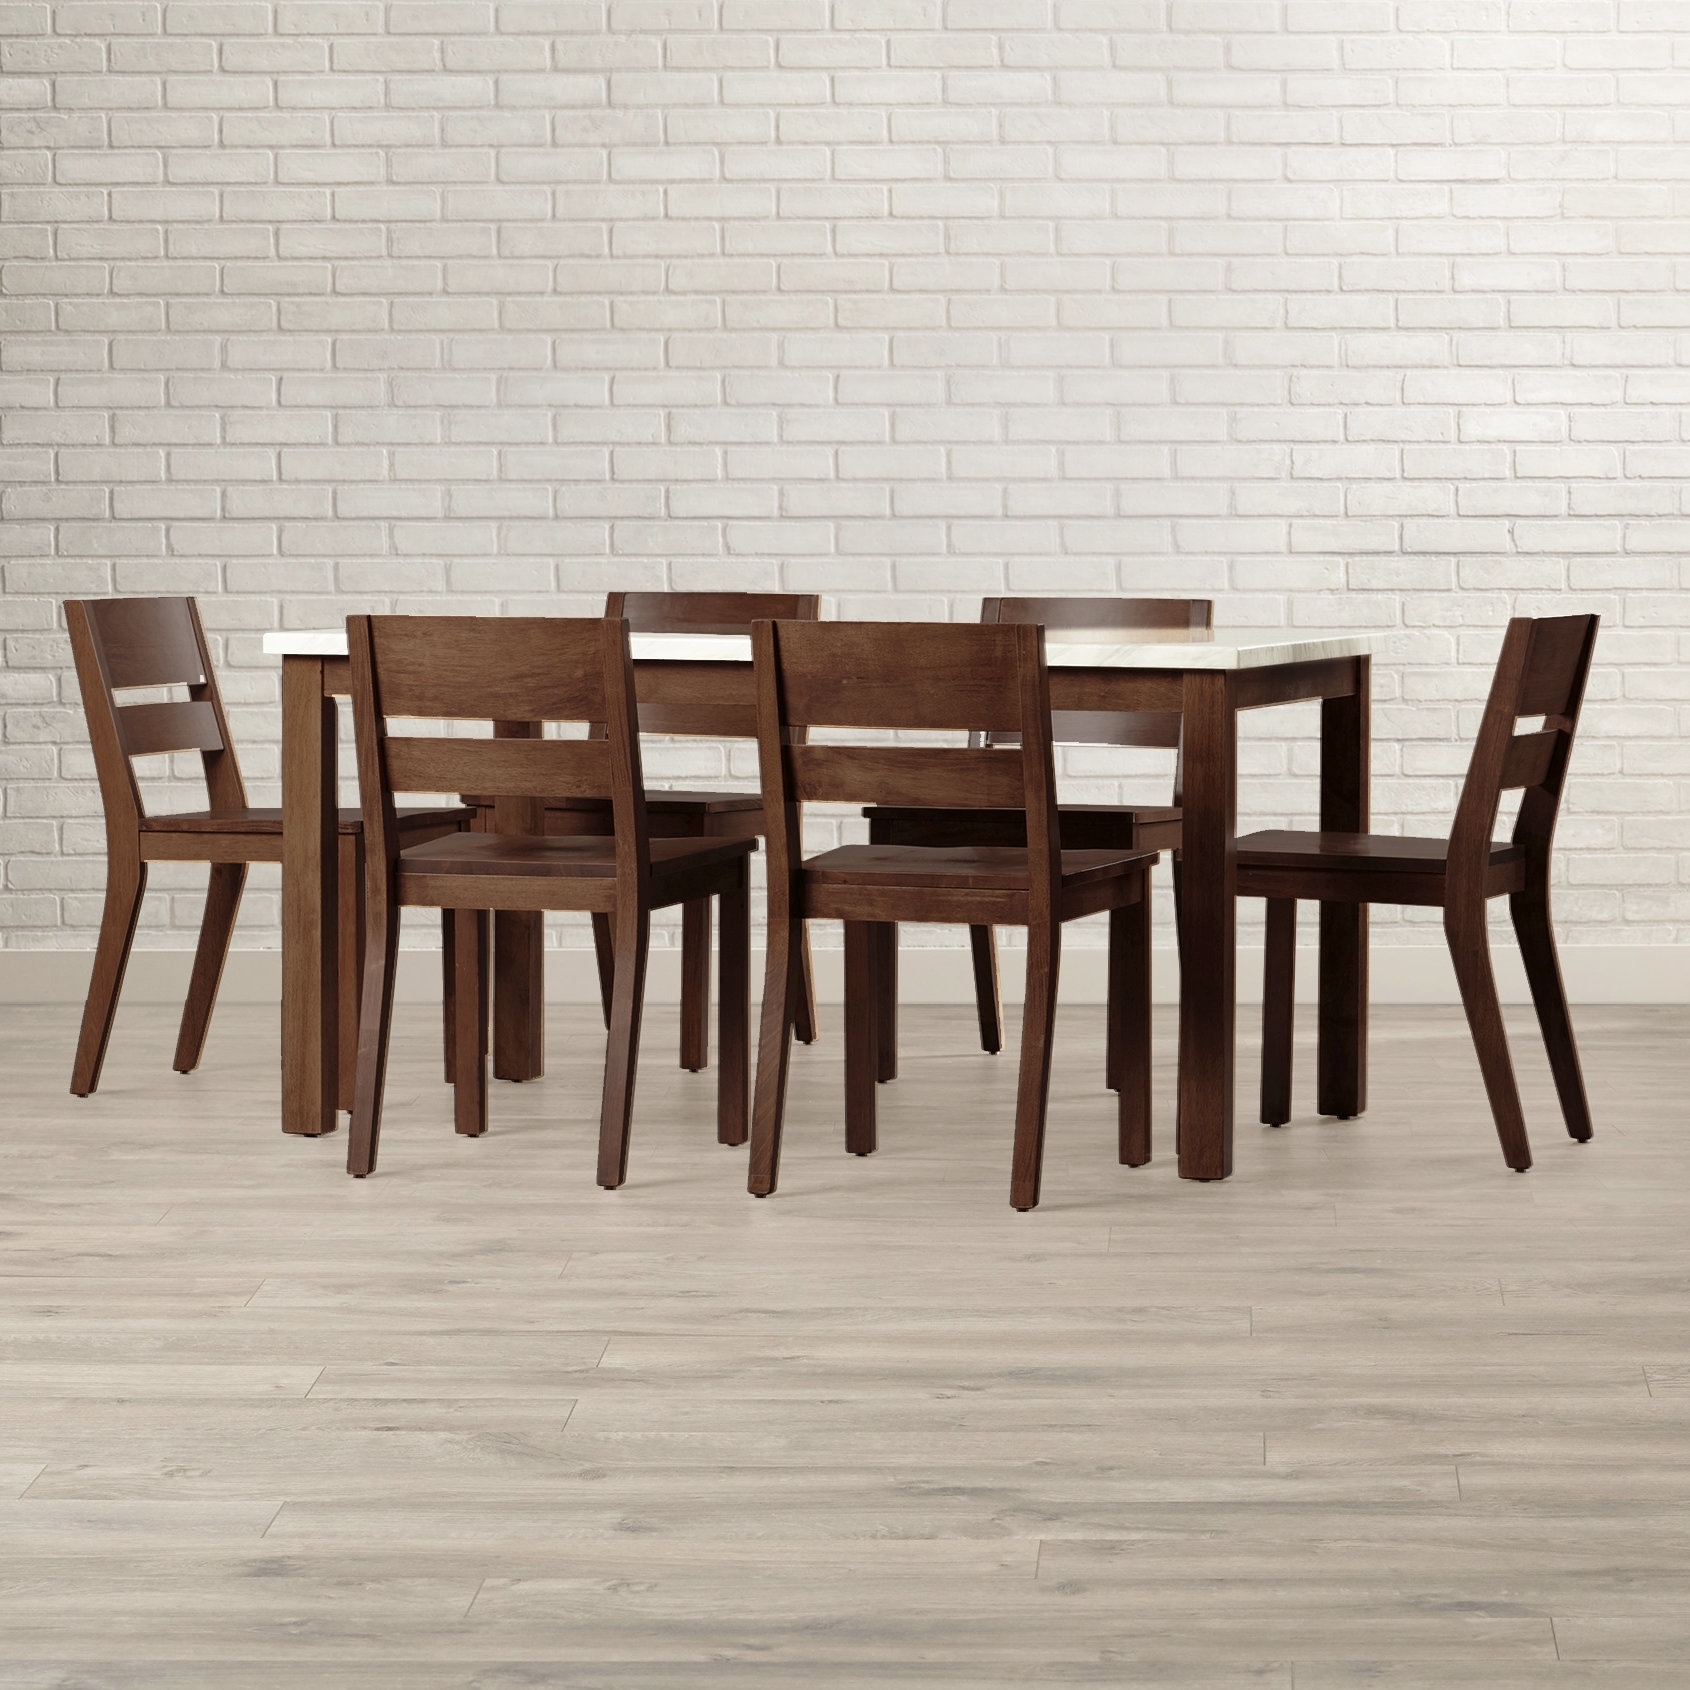 Brayden Studio Losey 7 Piece Dining Set & Reviews | Wayfair With Most Current Candice Ii 5 Piece Round Dining Sets With Slat Back Side Chairs (View 14 of 20)